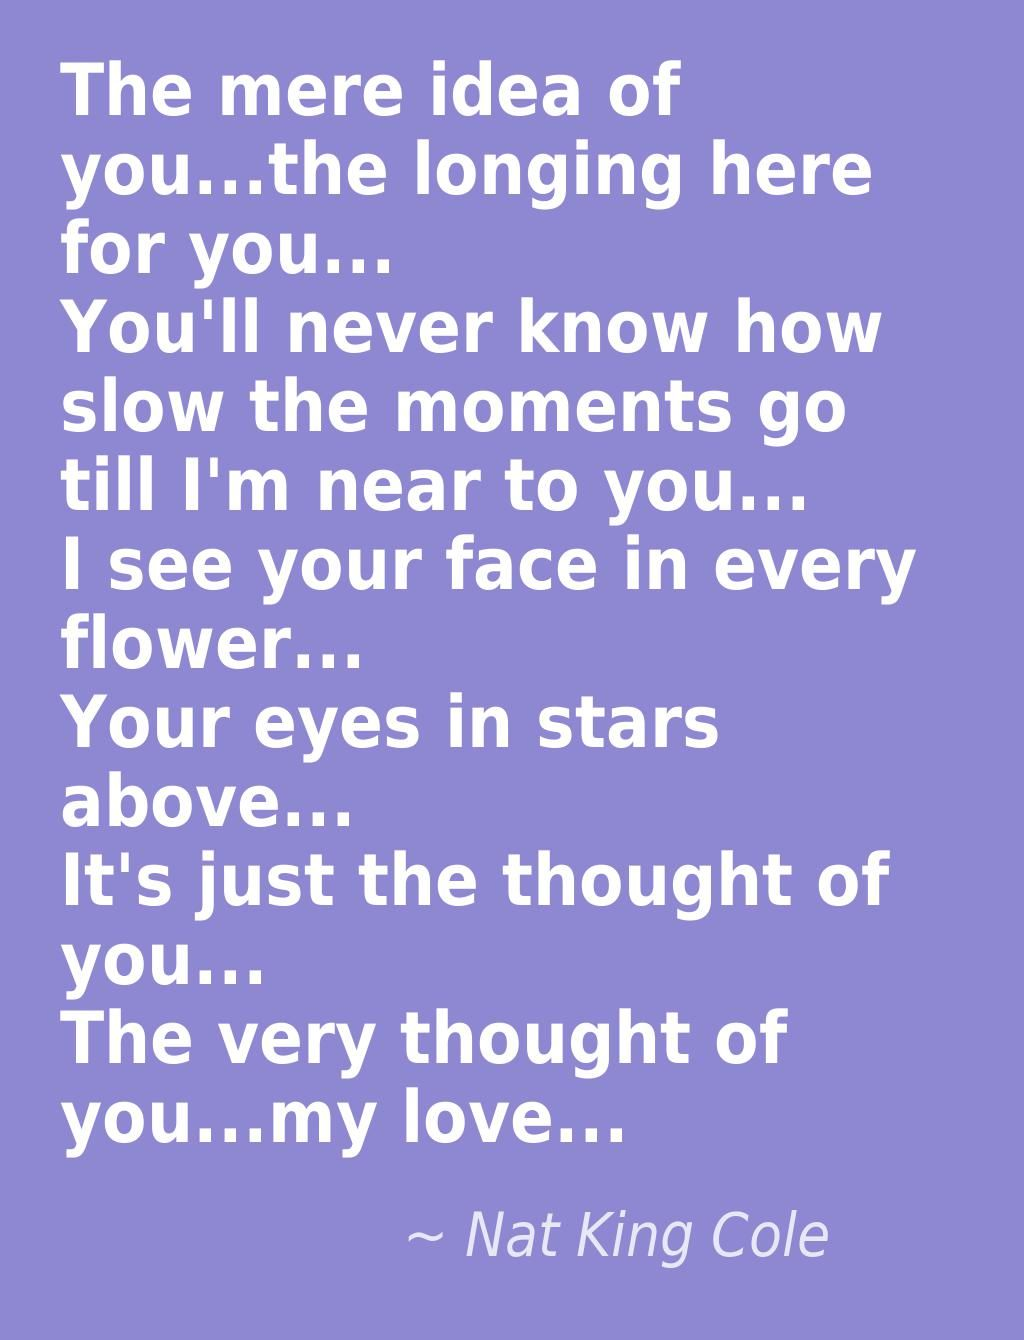 The Very Thought Of You Nat King Coleim Thinking Of You